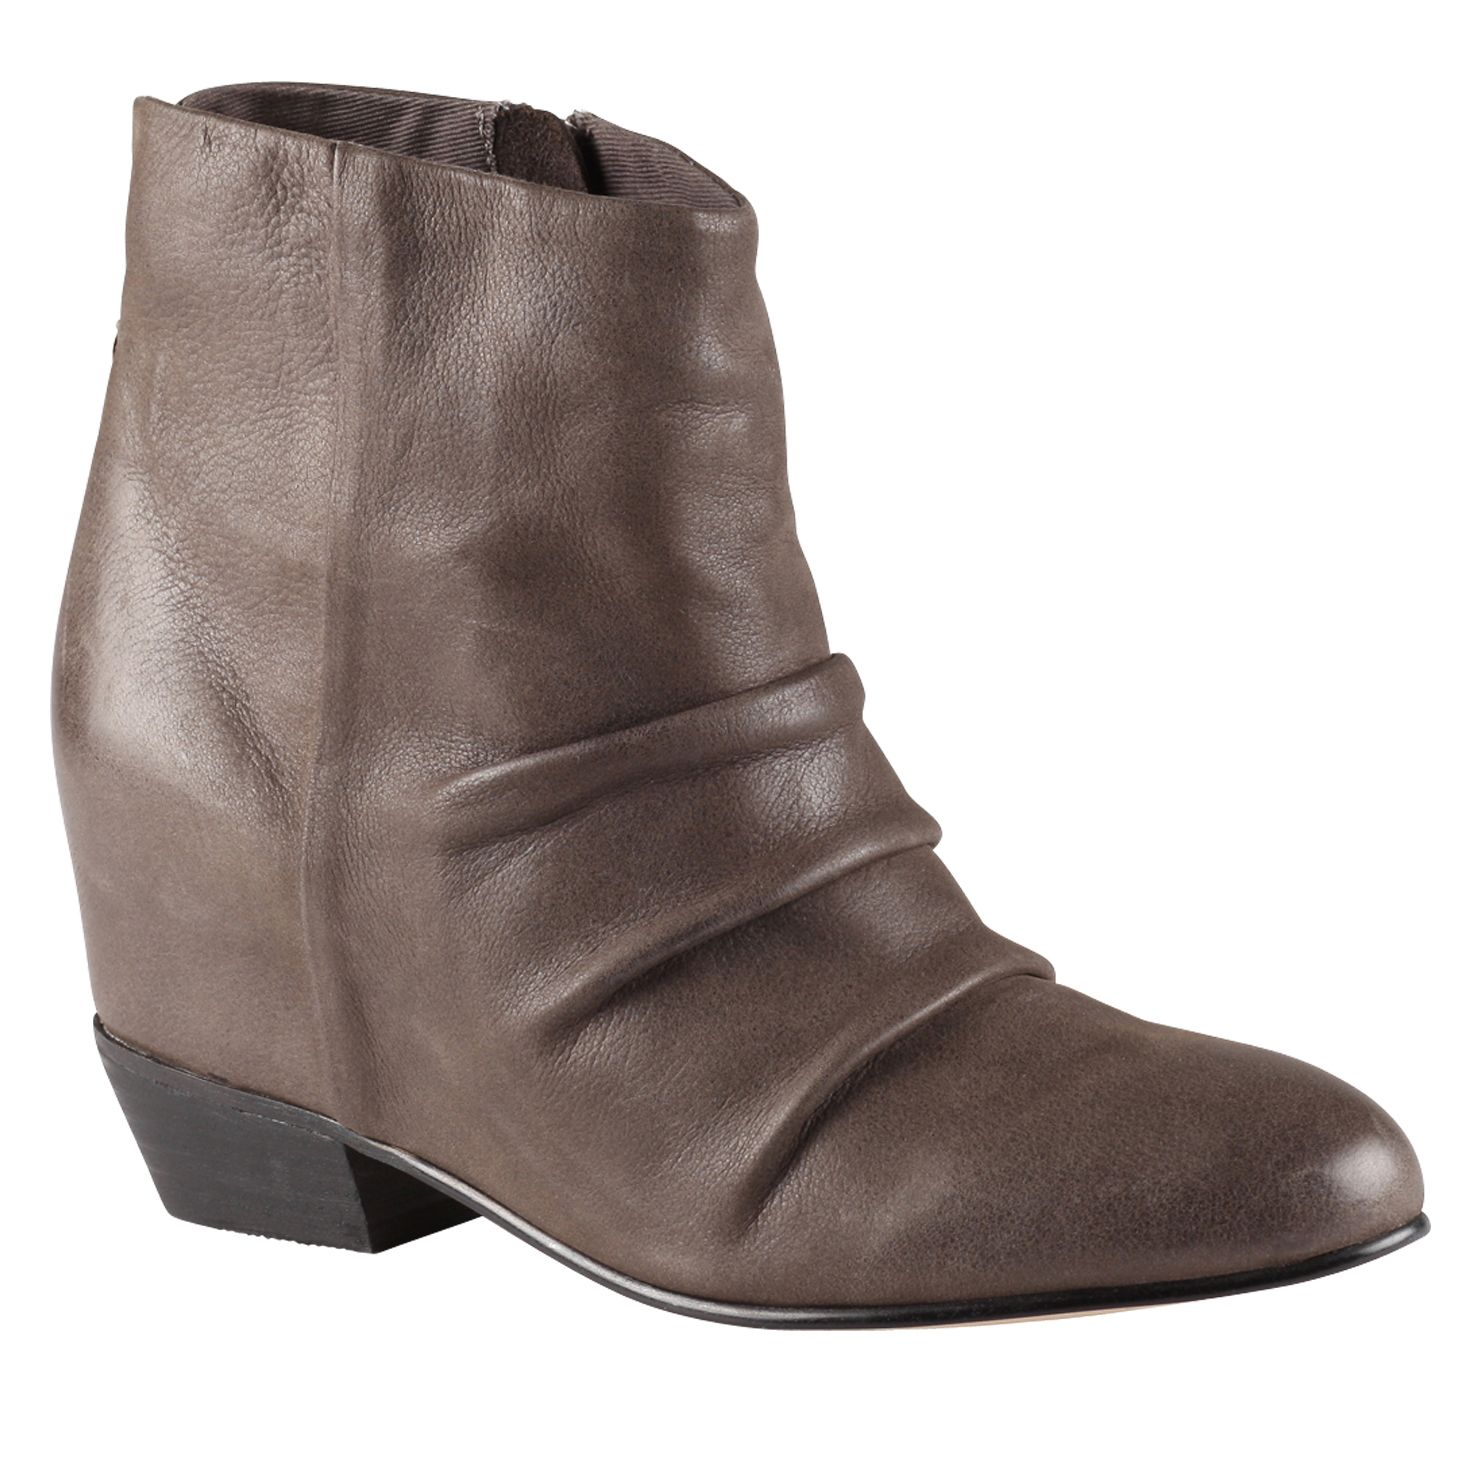 Azola almond toe wedge boots